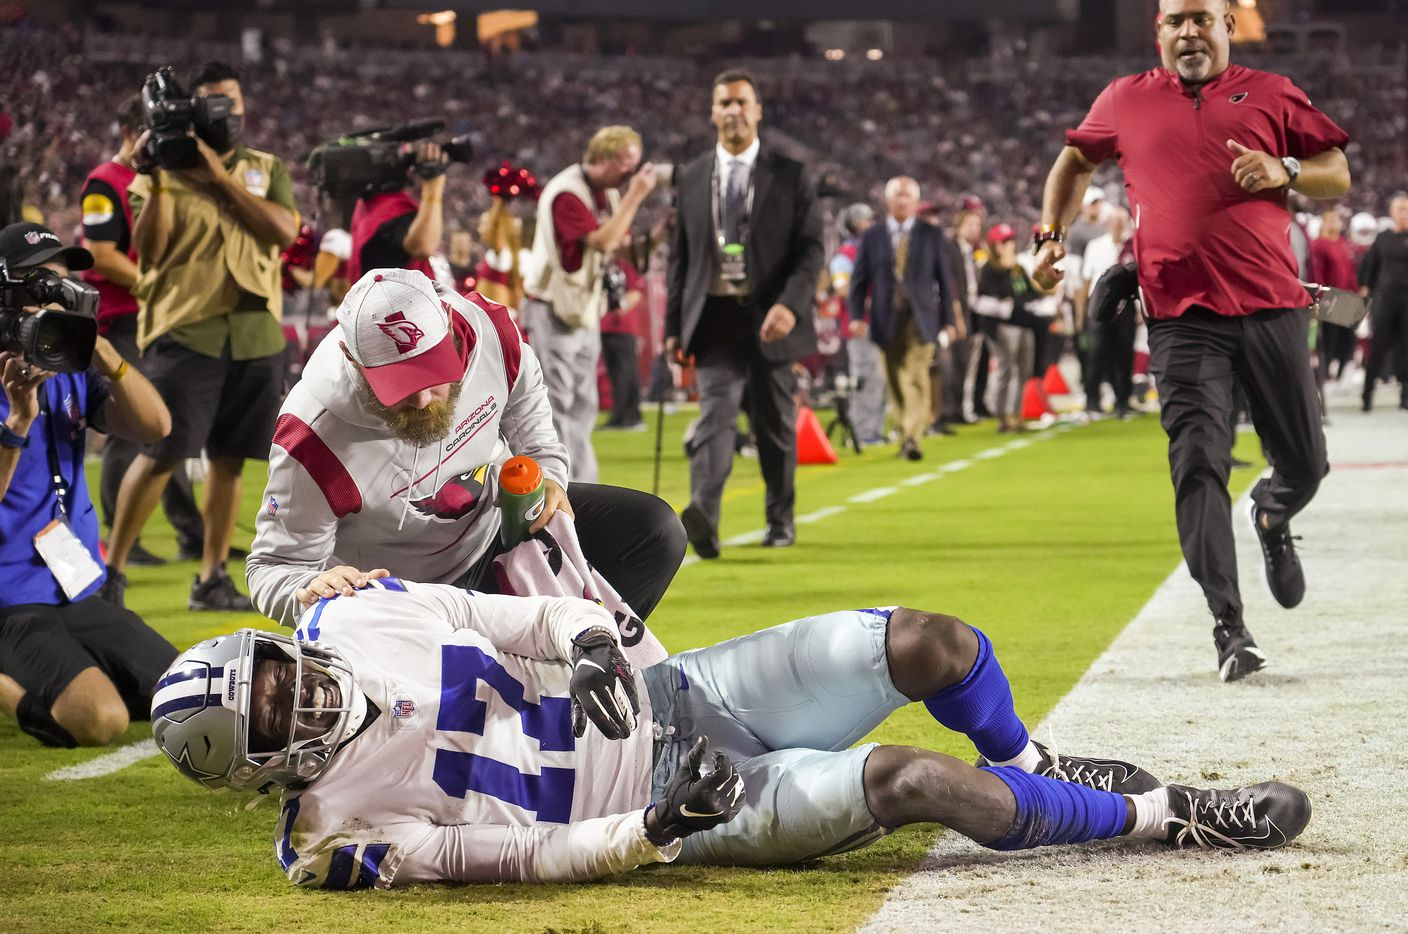 Arizona Cardinals training staff rush to the aid of Dallas Cowboys wide receiver Malik Turner (17) after he was injured on a pass play during the second half of a preseason NFL football game at State Farm Stadium on Friday, Aug. 13, 2021, in Glendale, Ariz.